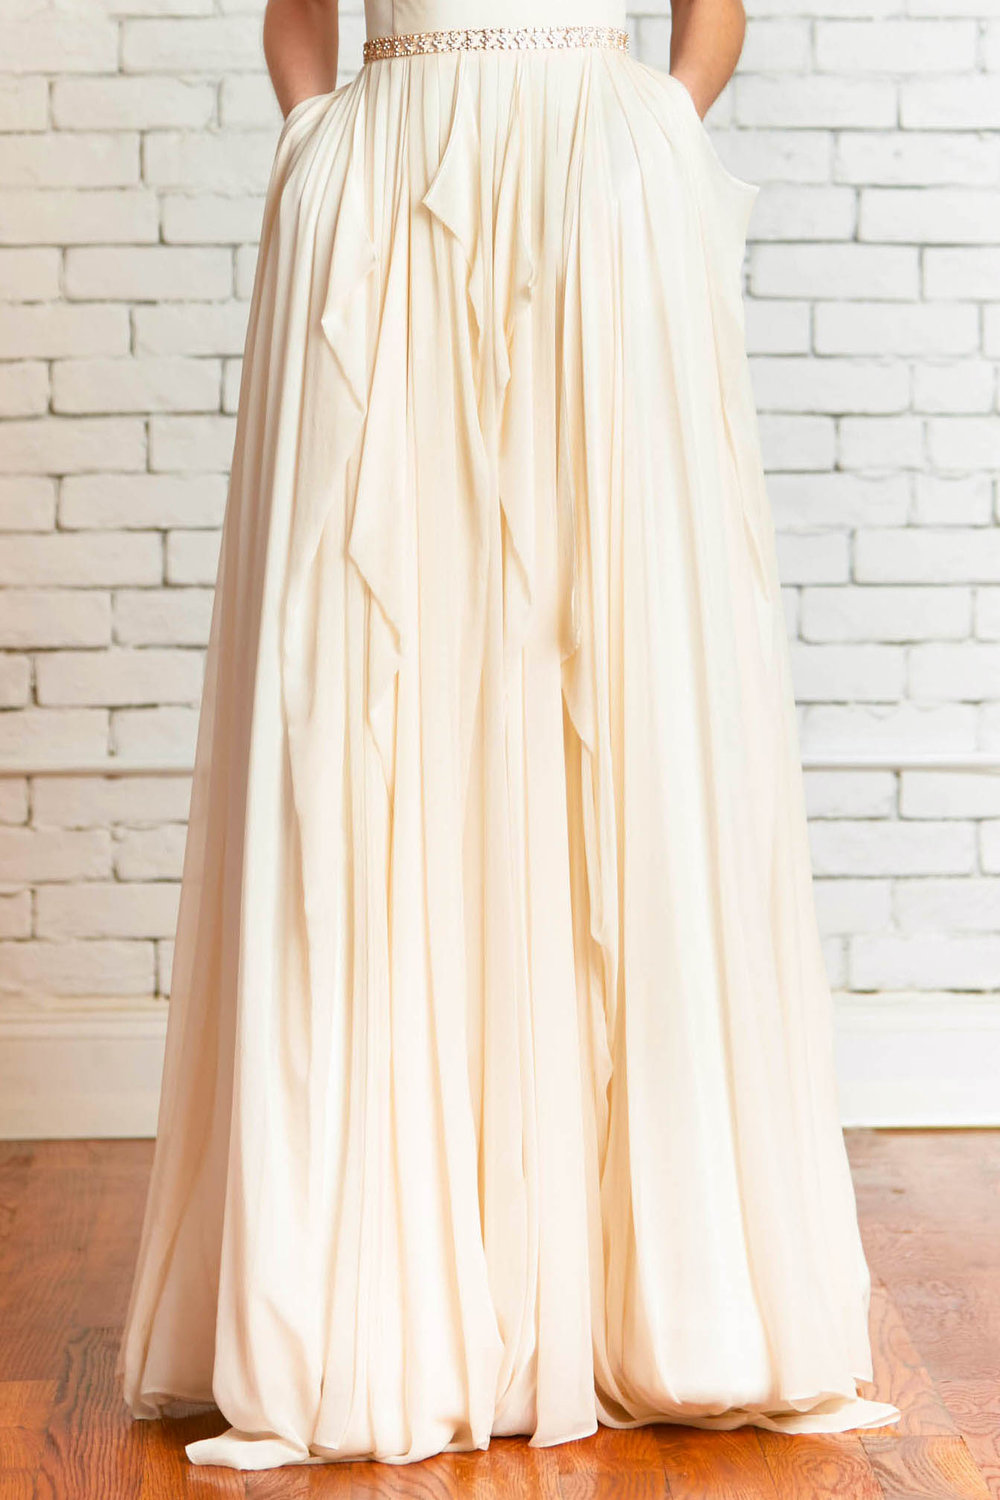 Sierra-Front-Skirt_Chiffon_Draped_A-line_Skirt_Wedding_Separates.jpg